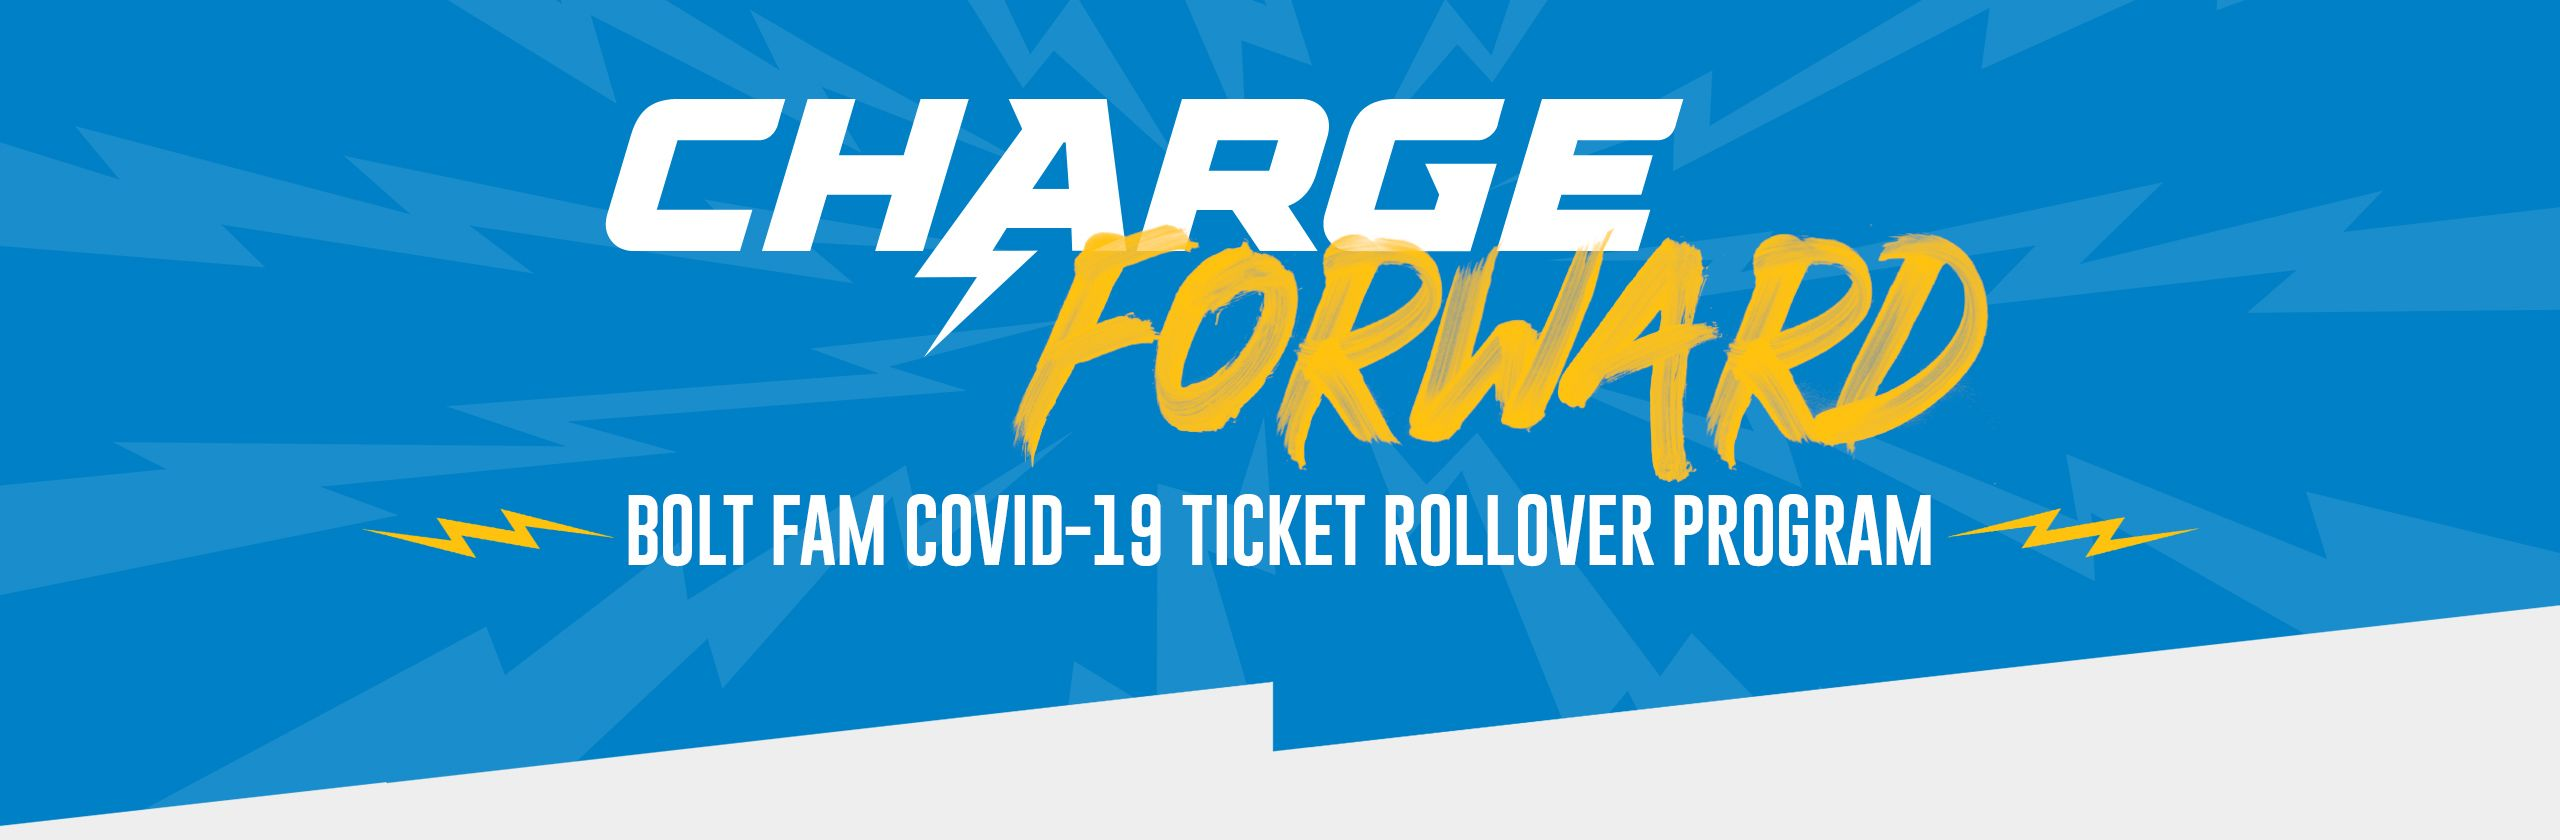 200709_Site_Tickets_Charge_Forward_Header_V2